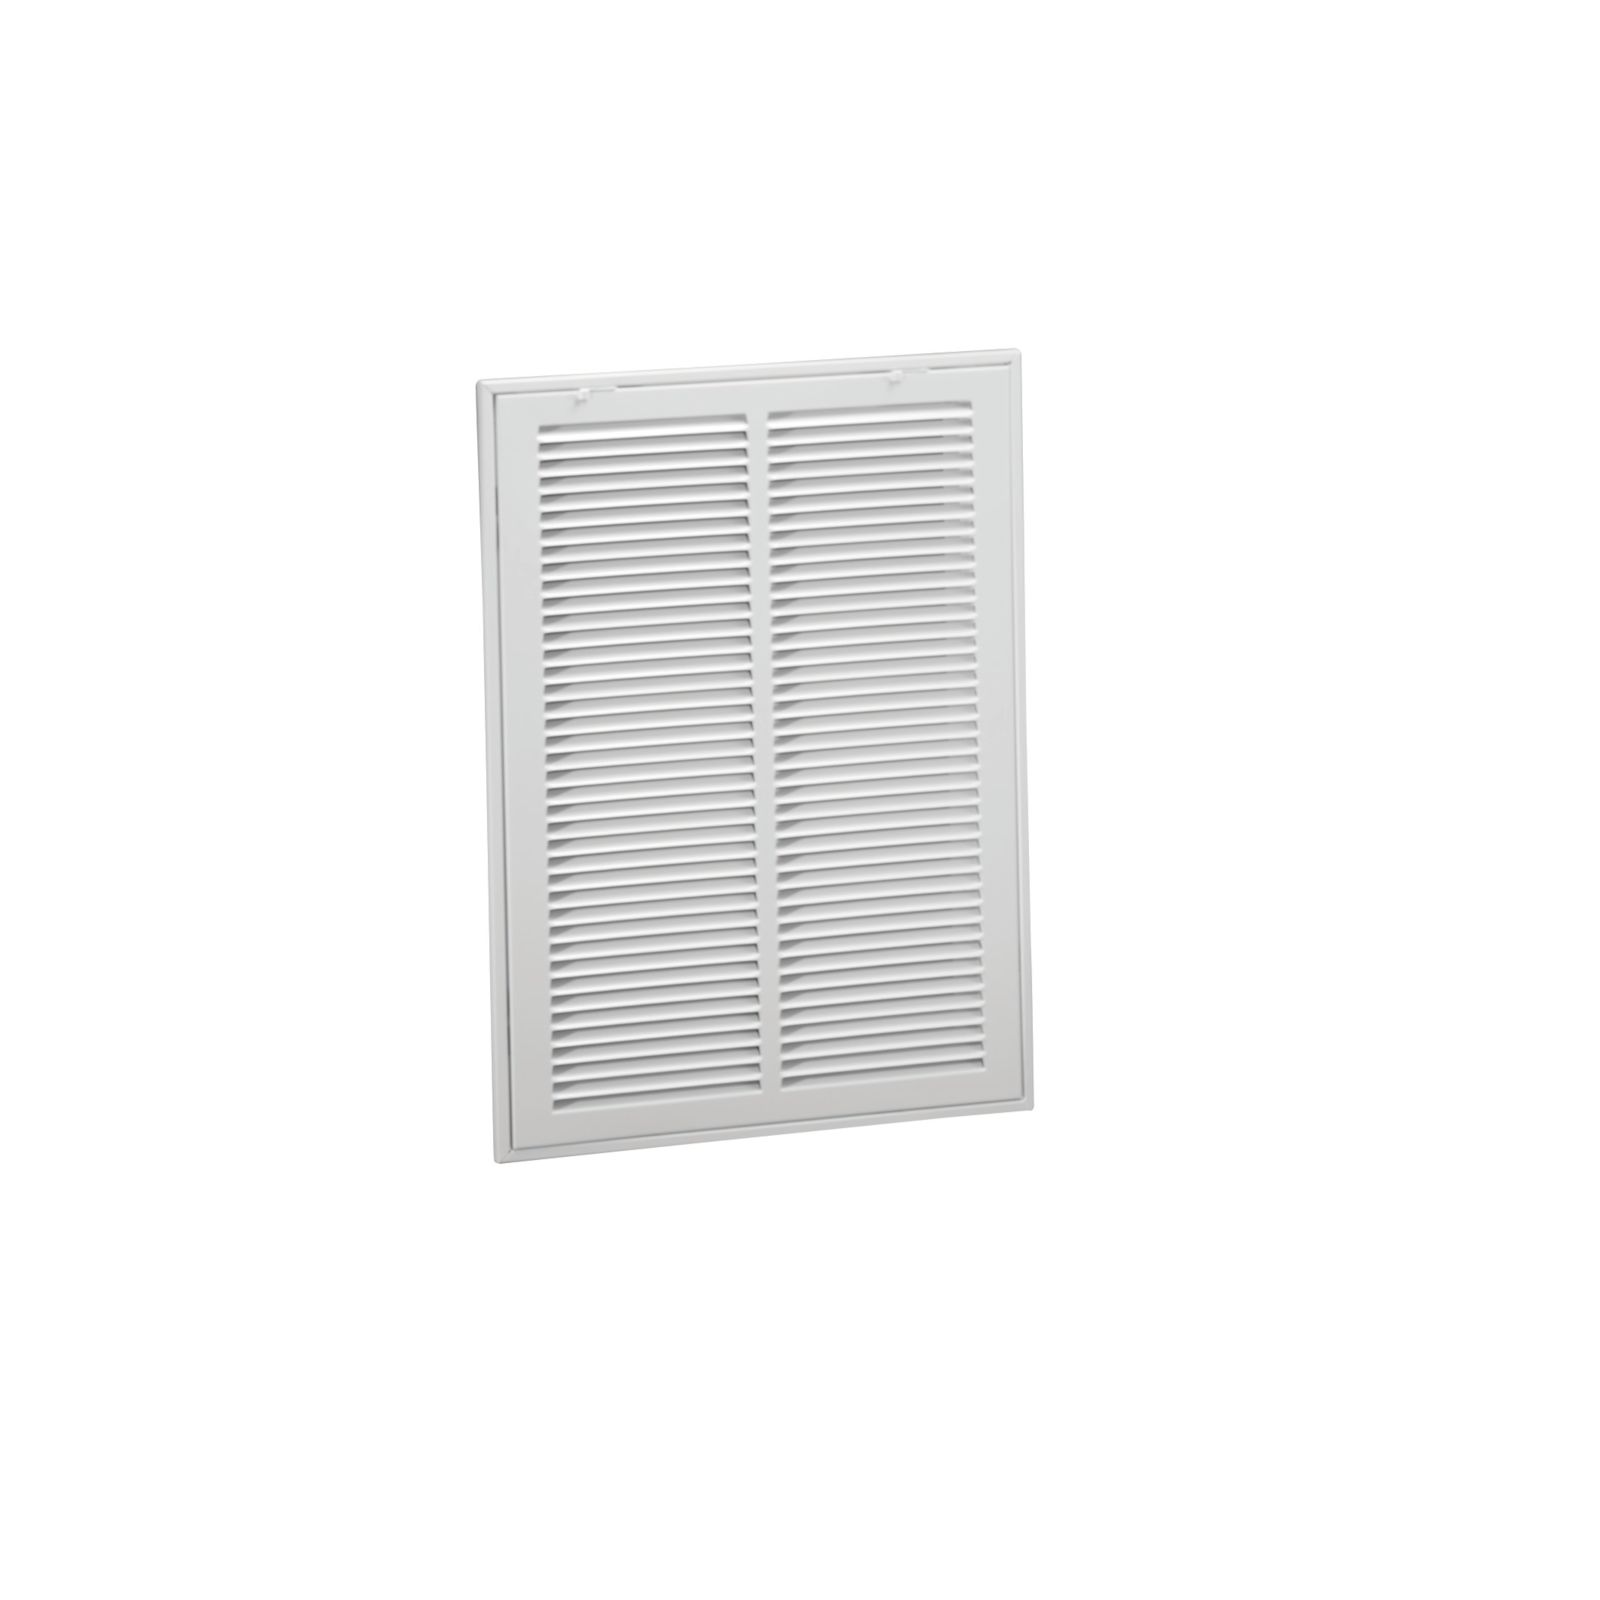 "Hart & Cooley 013924 - #673 Steel Return Air Filter Grille, White Finish, 10"" X 10"""